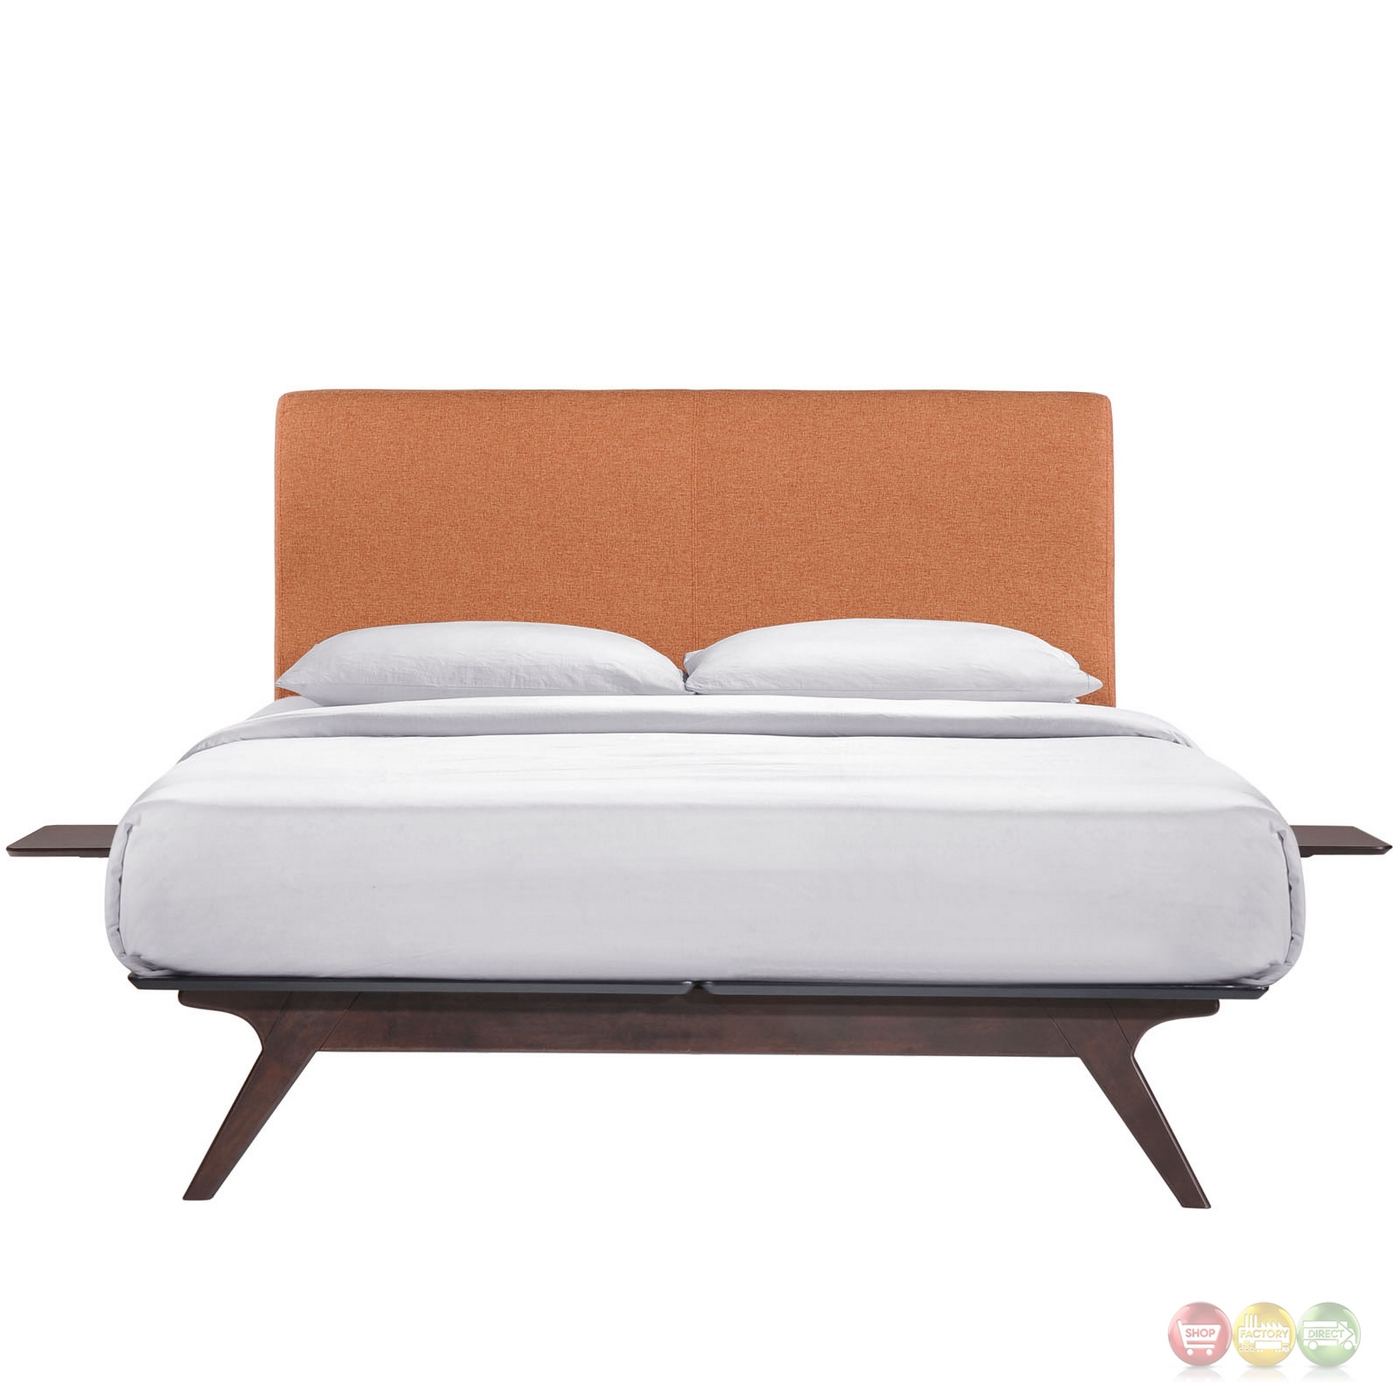 tracy mid century upholstered king platform bed with nightstands cappuccino orange. Black Bedroom Furniture Sets. Home Design Ideas